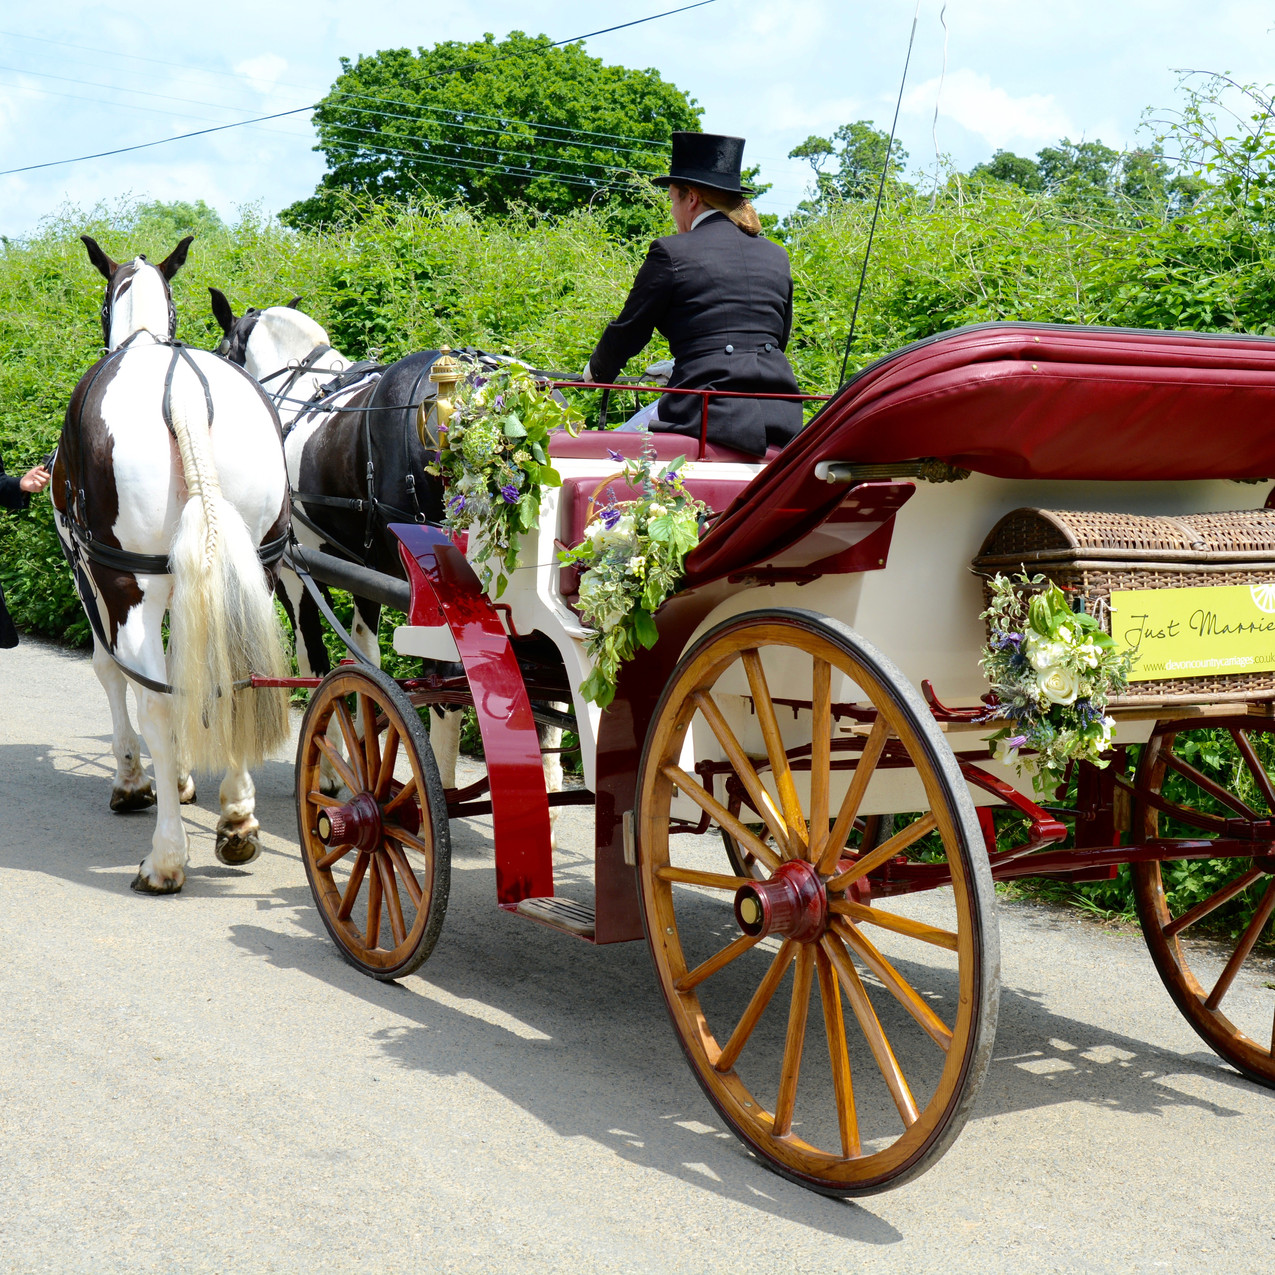 Horse and carriage dressed with woodland style floral arrangements